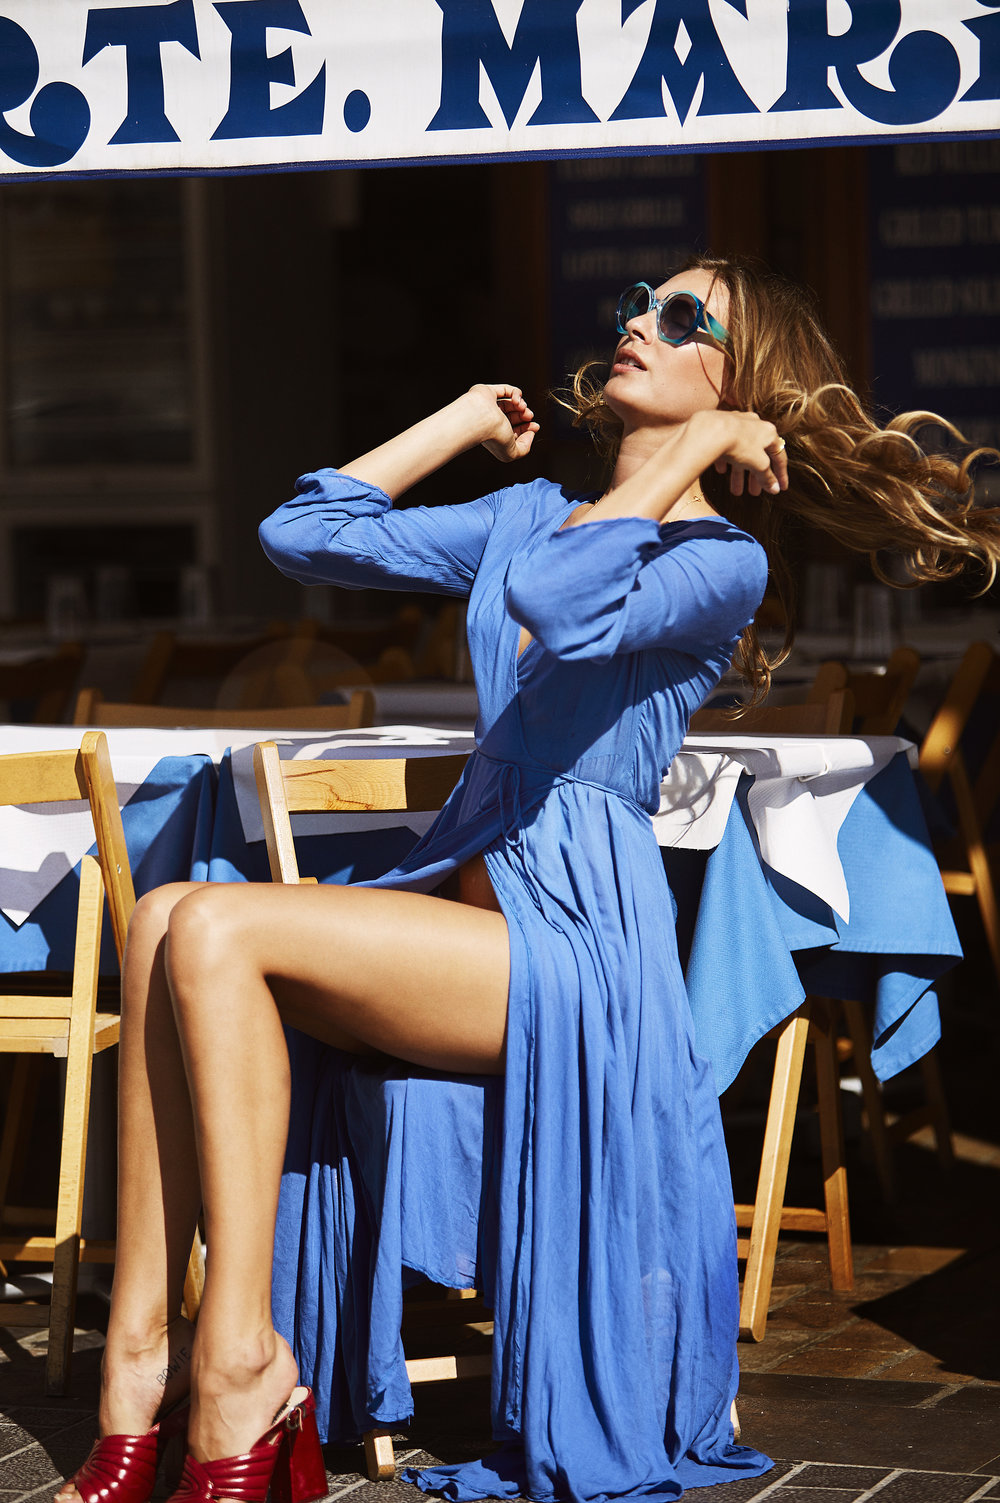 Bianca Wrap Dress Blue.jpg